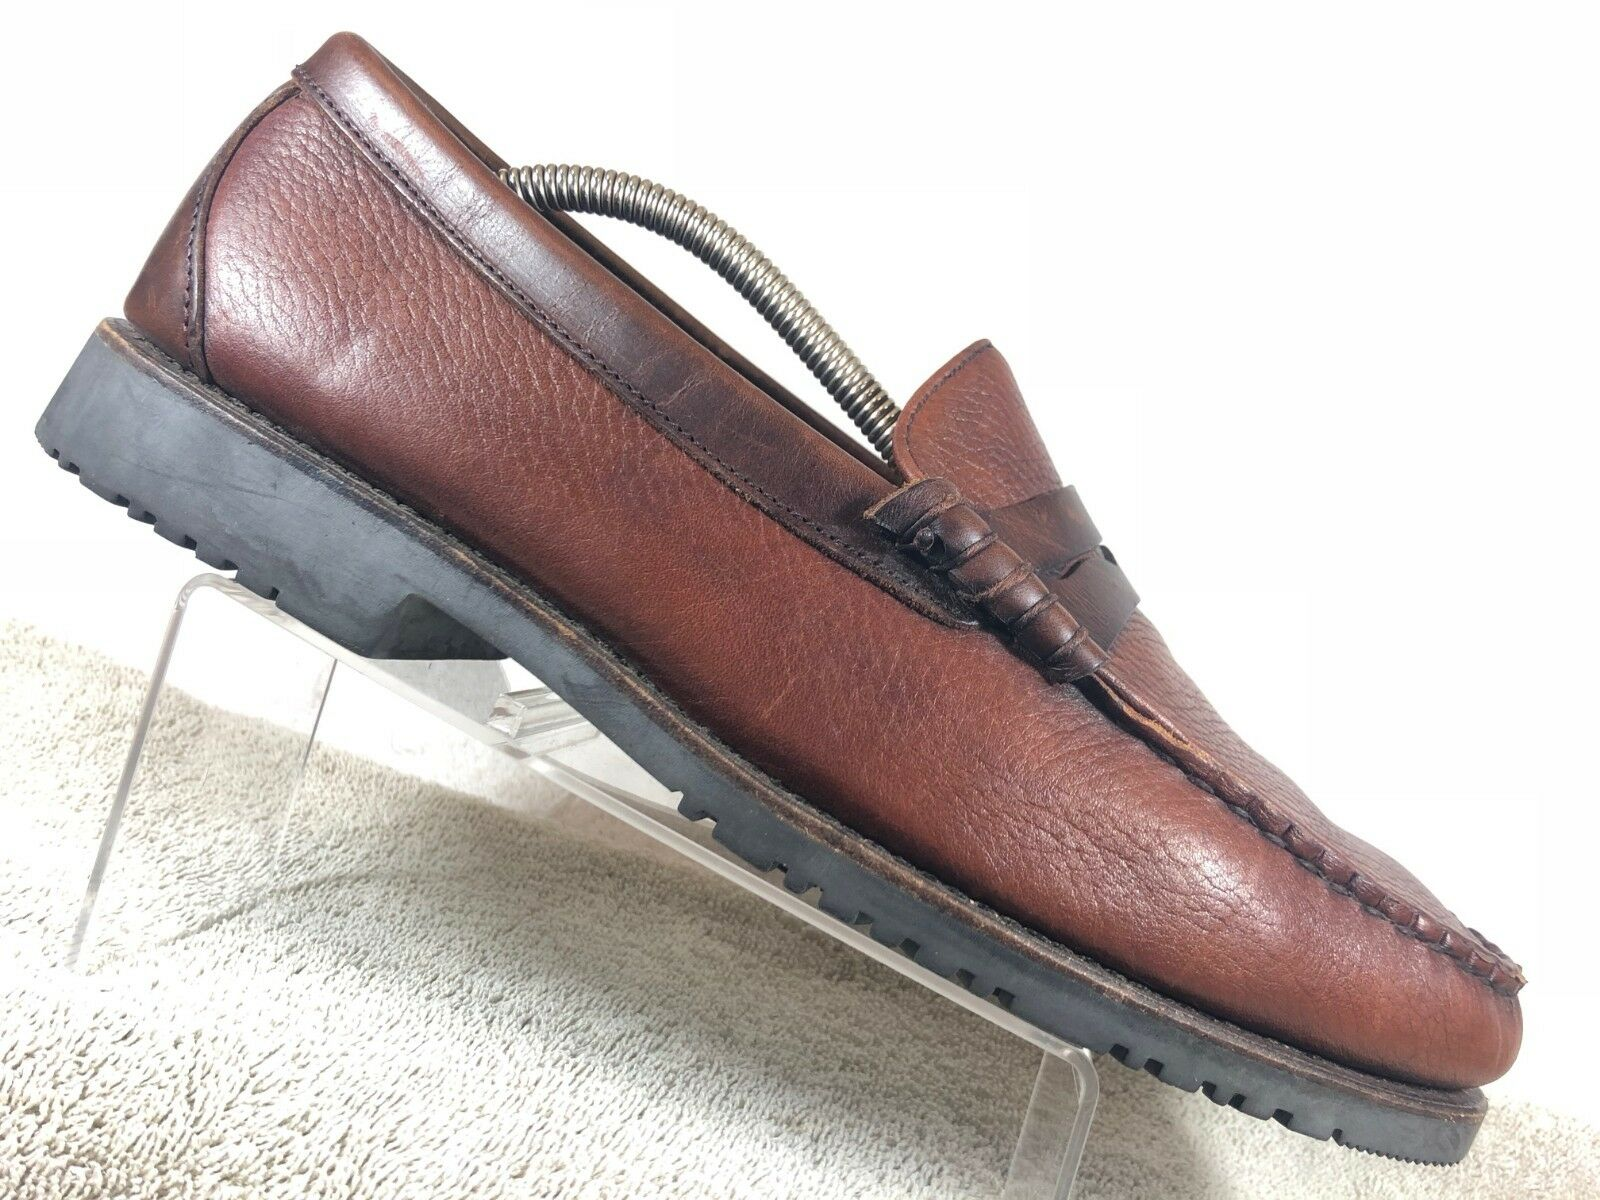 tuttien Edmonds Holton Marronee Leather Casual Moc Toe Penny Loafers Men 11 Sautope classeiche da uomo